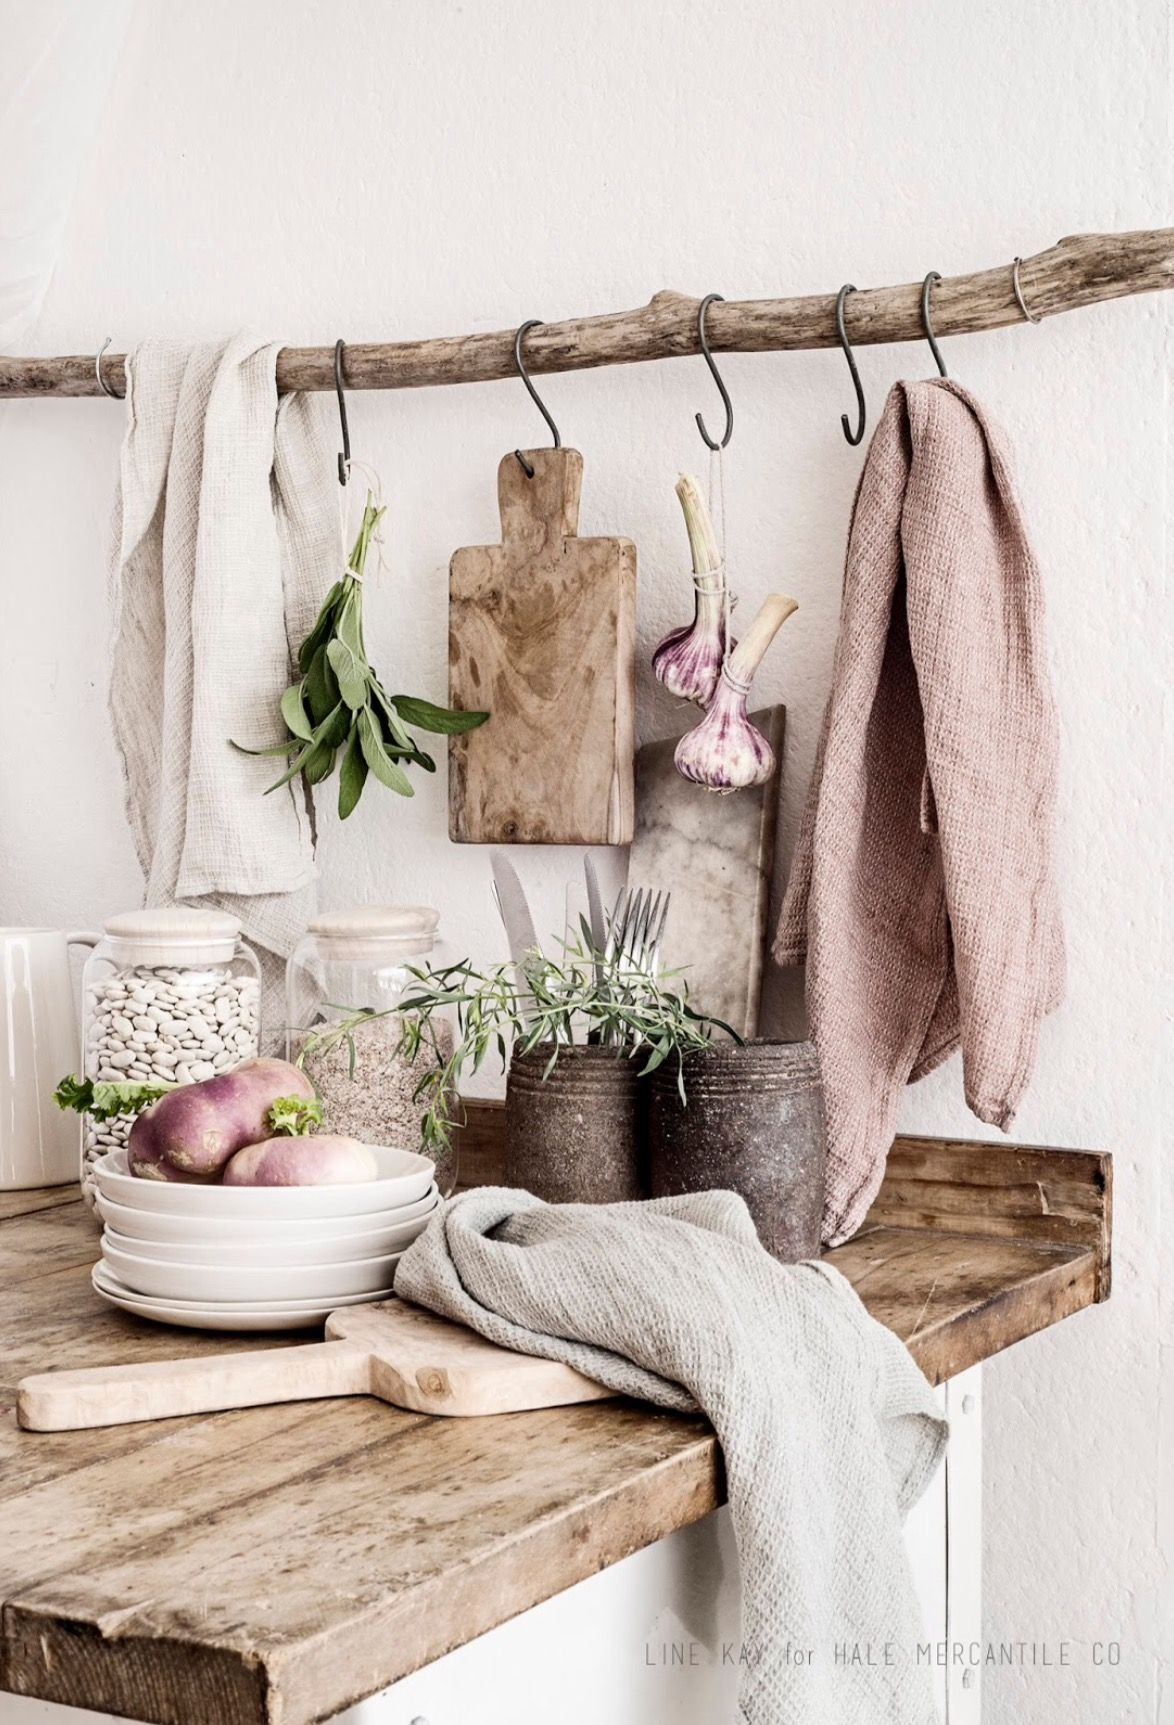 Pin By Bypias On Naturals In 2018 Pinterest Home Home Decor And